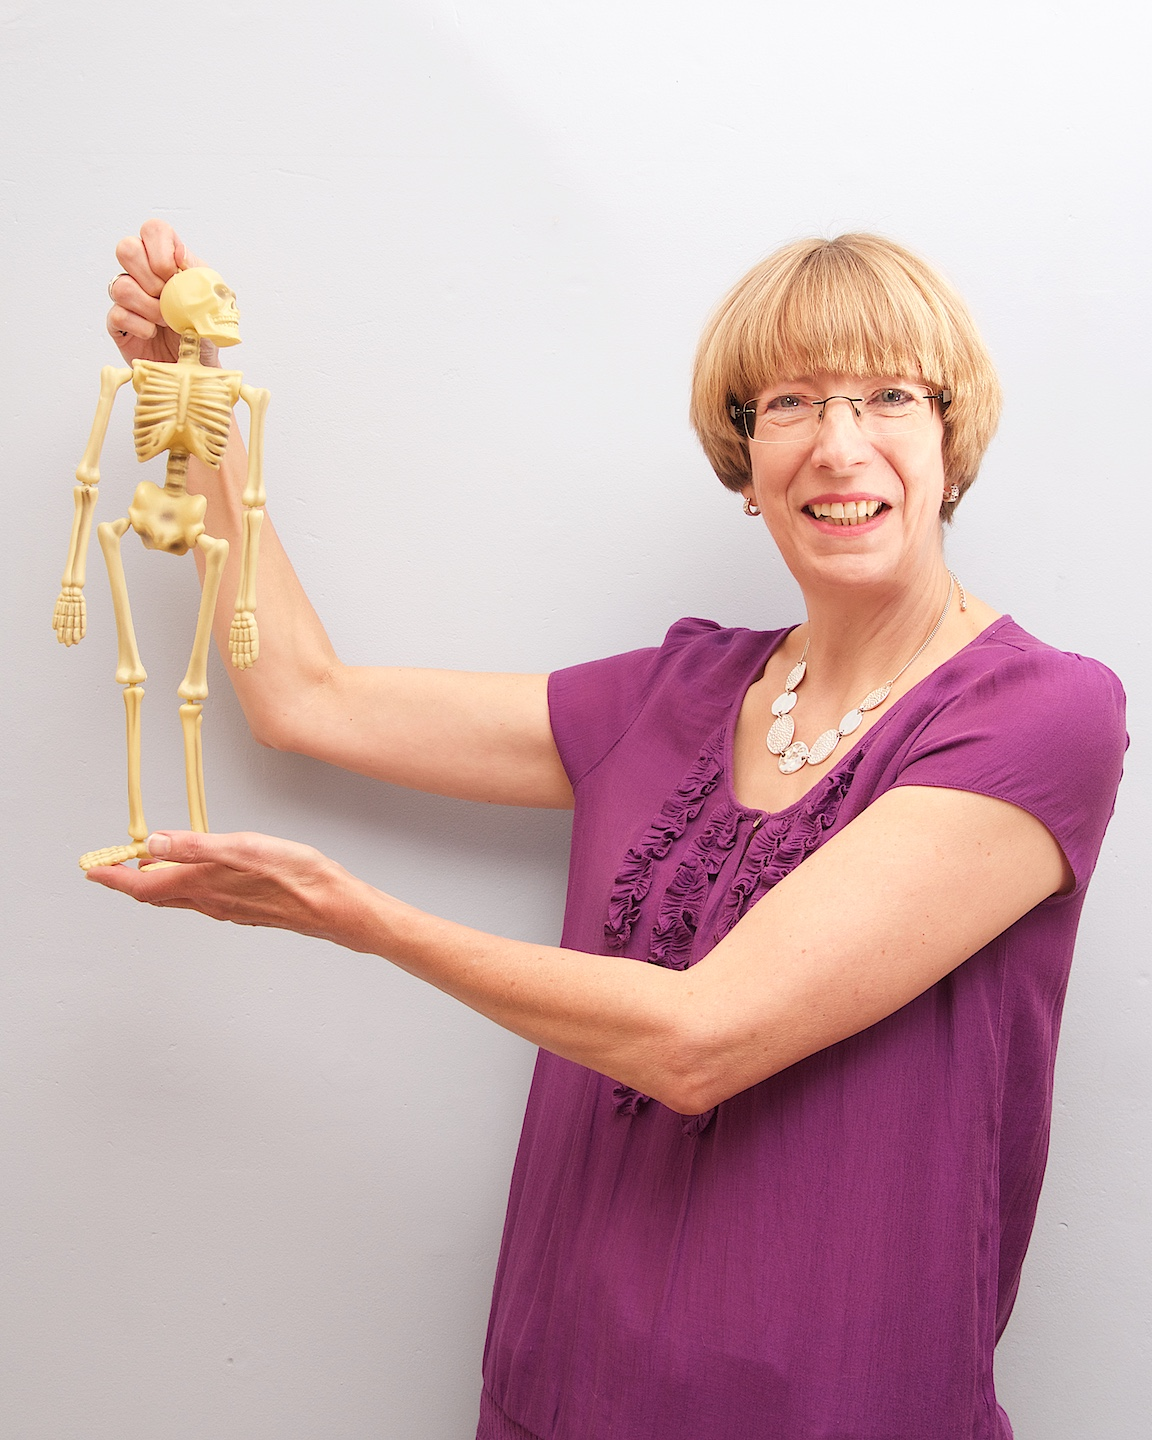 I'm Alison, the ergo elf! - I became an 'expert patient' after being injured in a car accident as a teenager. I learned all these amazing things about my body, and wondered why we have to wait to be injured to learn this life-changing stuff. I went on to undertake professional learning about posture, workstations, human factors and ergonomics. The result - I'm on a mission to share my passion and expertise for posture.